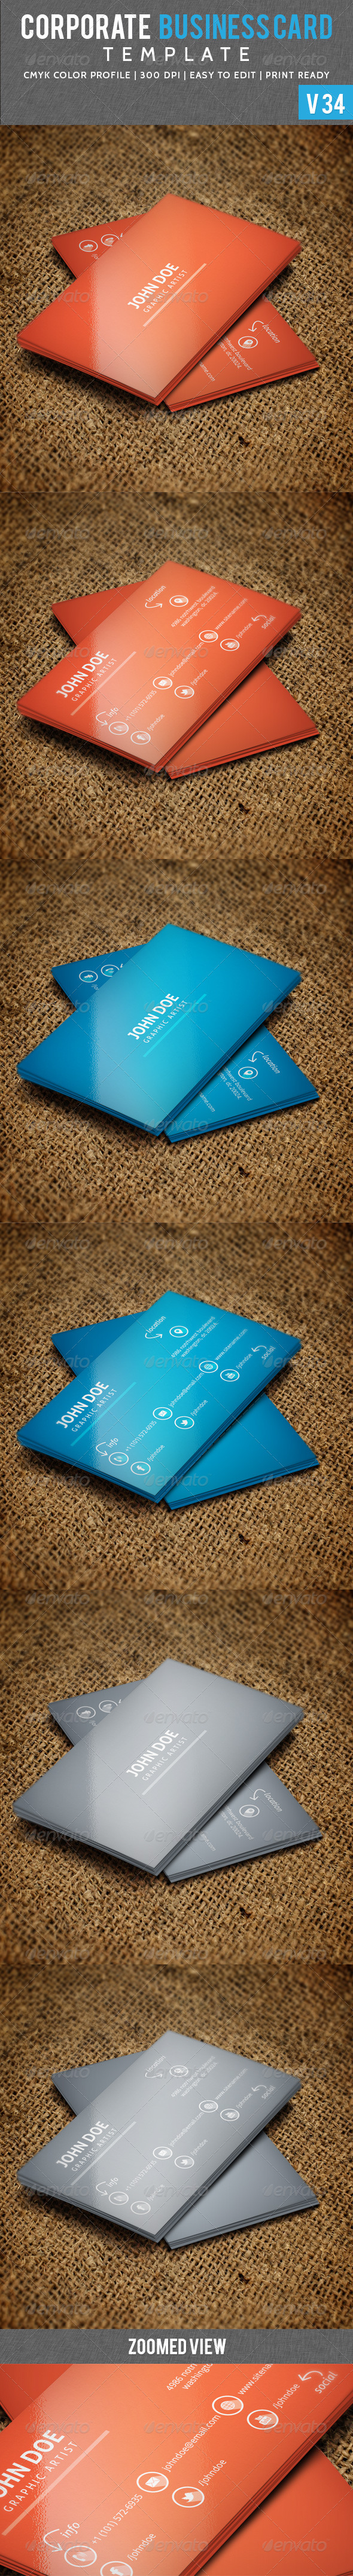 Long Shaded Corporate Business Card V 34 - Corporate Business Cards